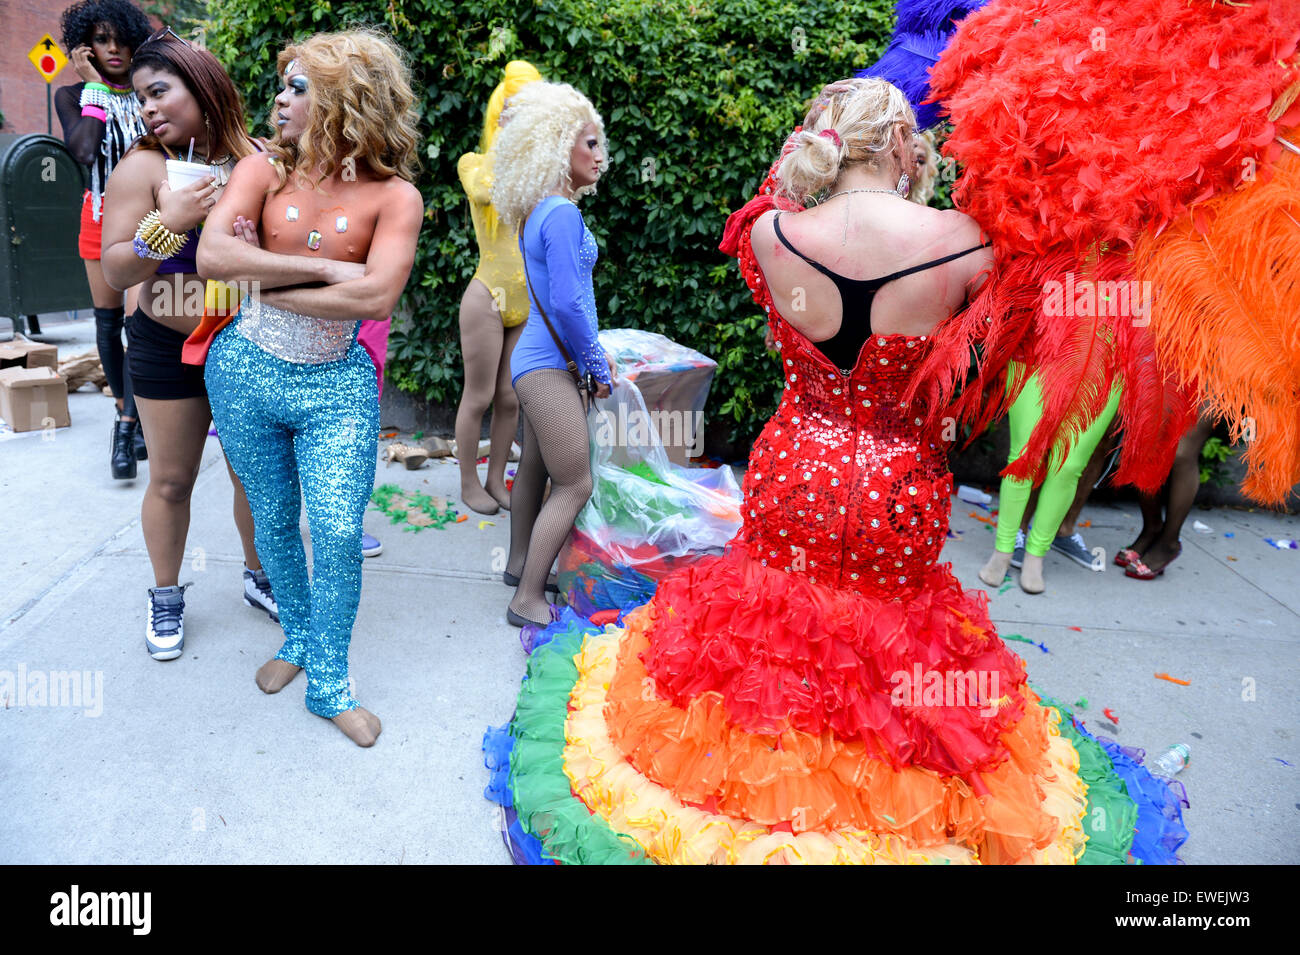 NEW YORK CITY, USA - JUNE 30, 2013: Drag queen in dramatic rainbow dress celebrates the annual gay pride event with - Stock Image